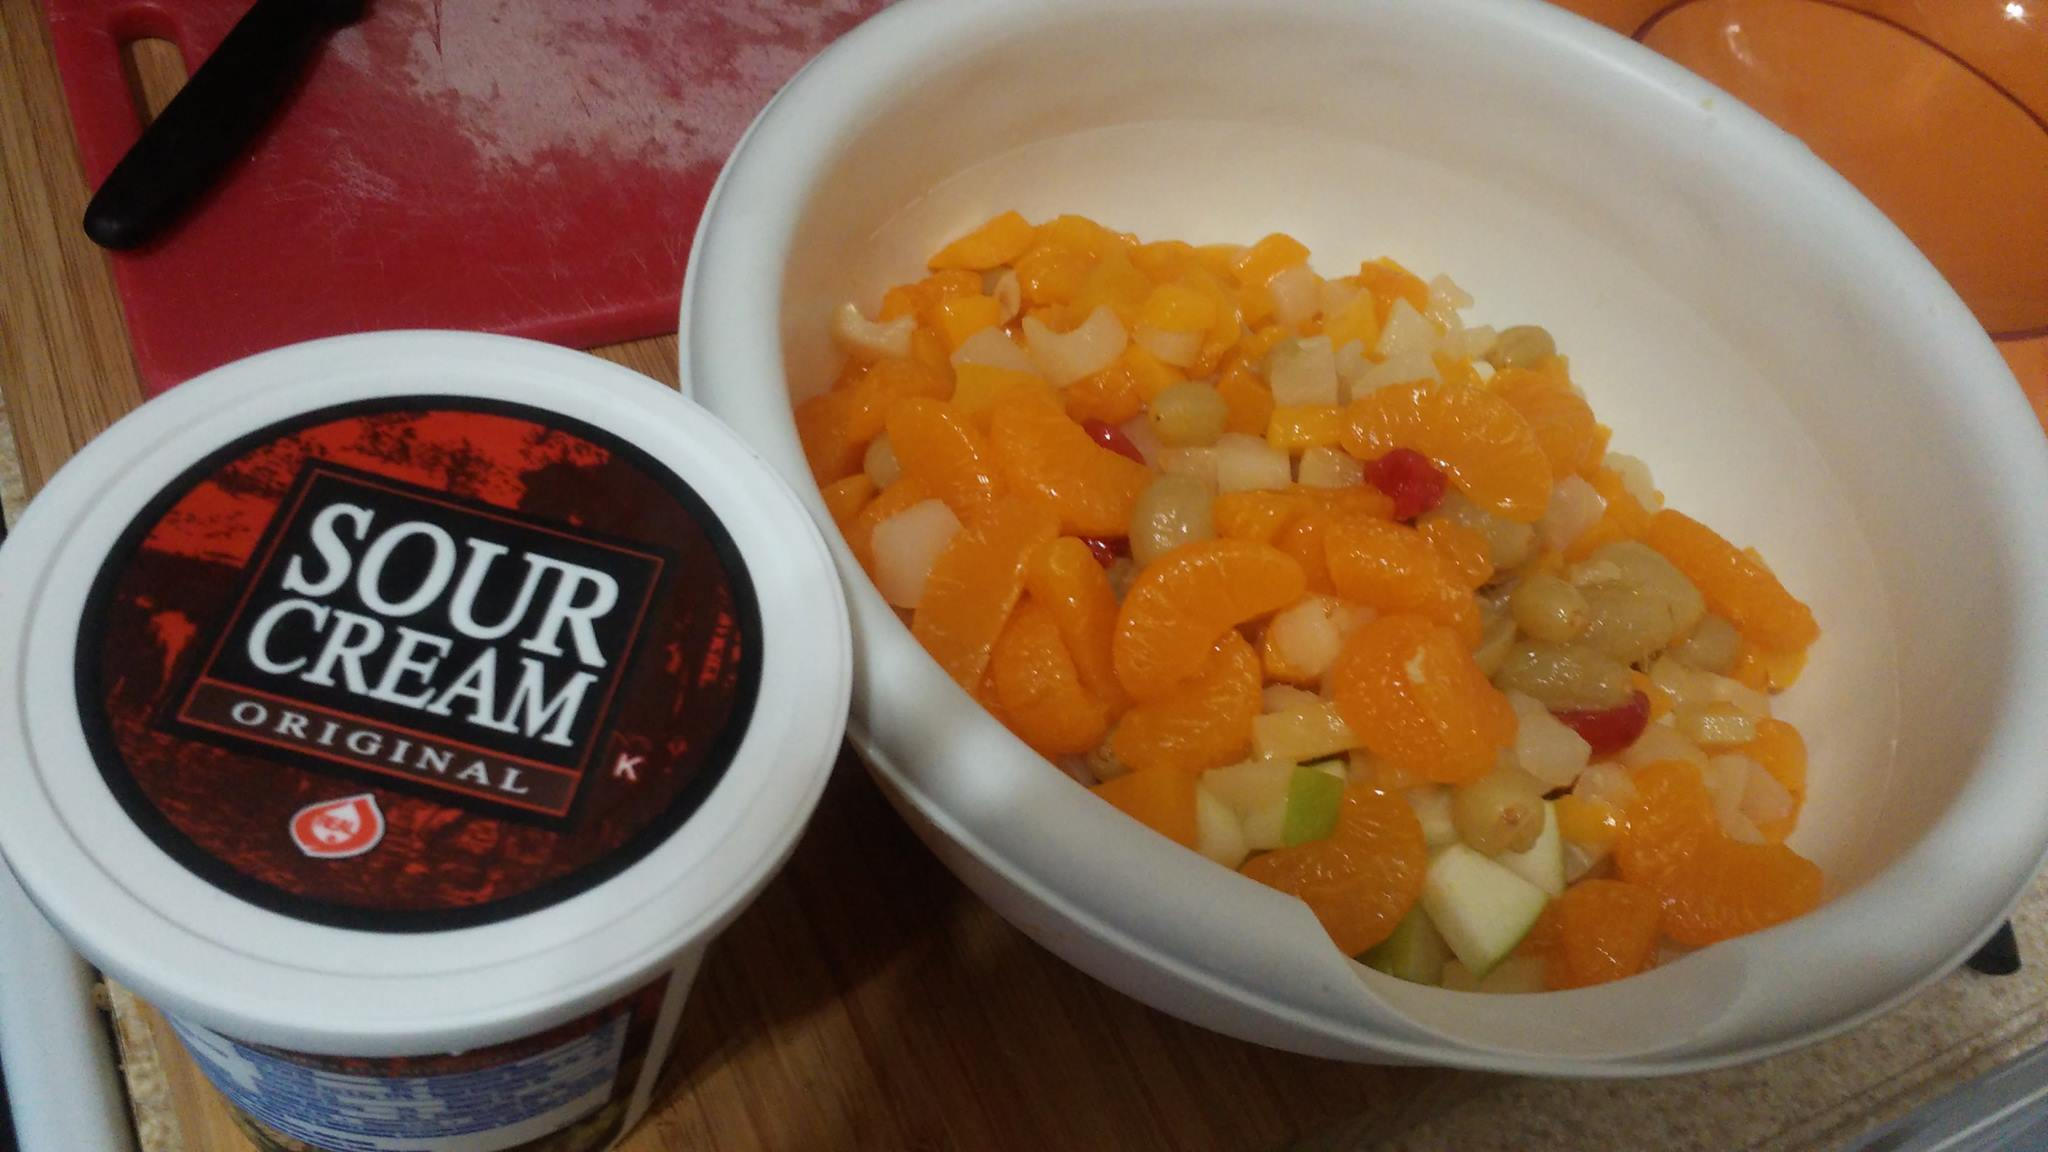 ...then I put all the fruit in a bowl and douse it with a large helping of sour cream...